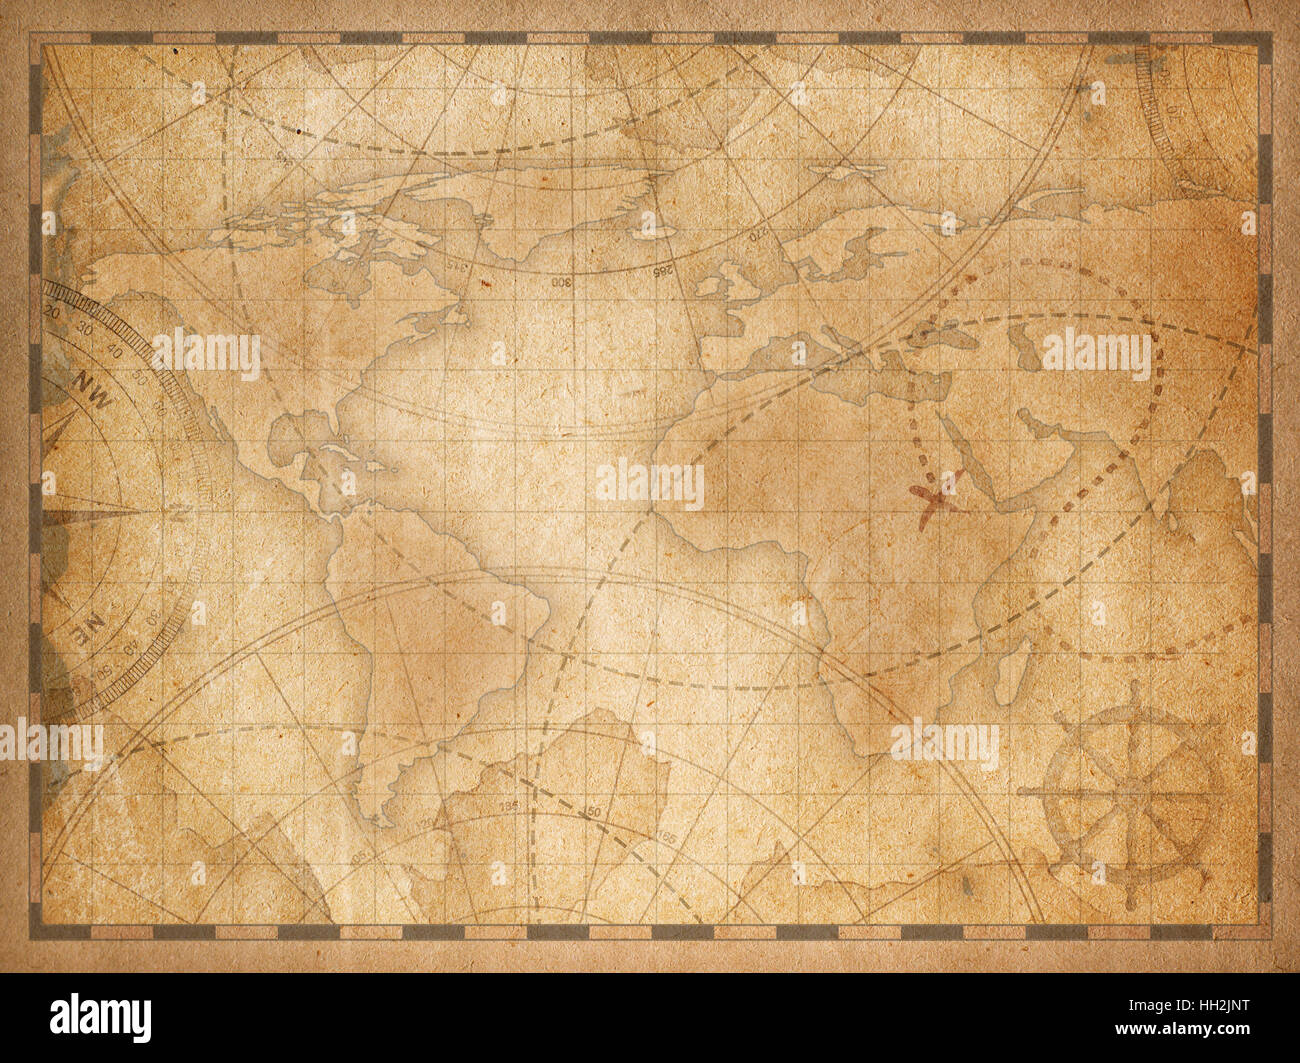 old world map background Stock Photo: 130980356   Alamy